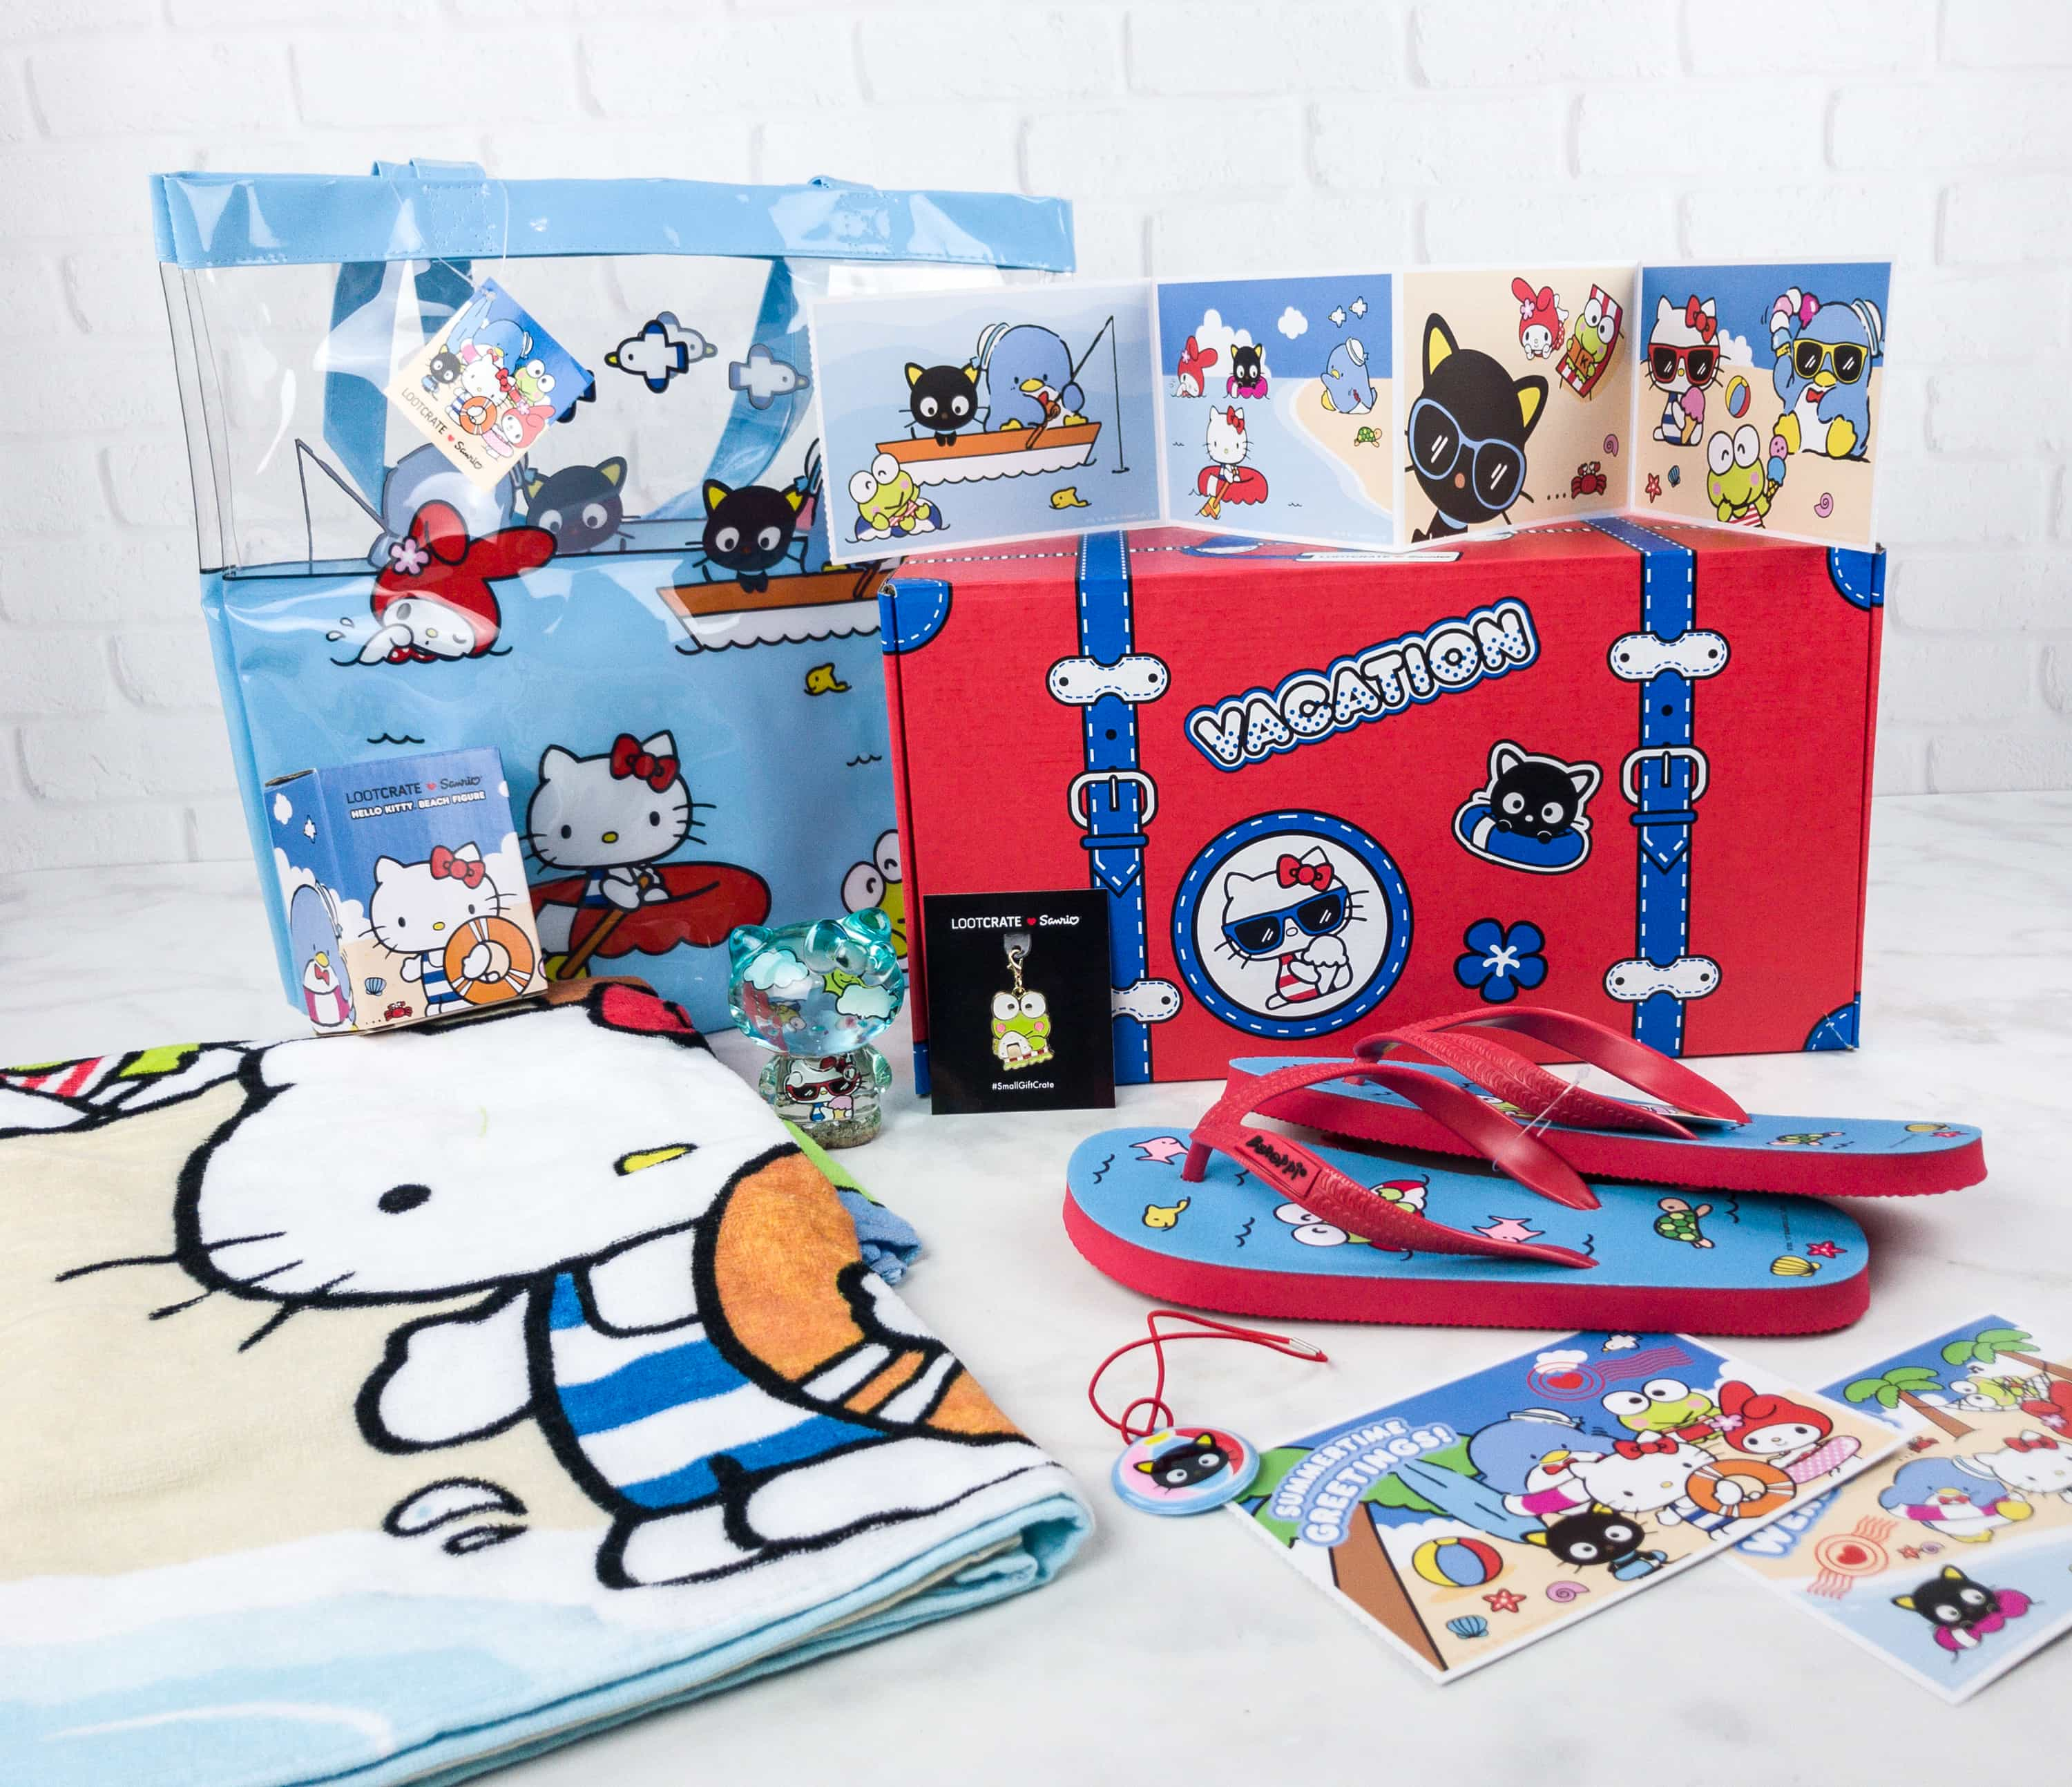 Sanrio Small Gift Crate Summer 2017 Subscription Box Review ...